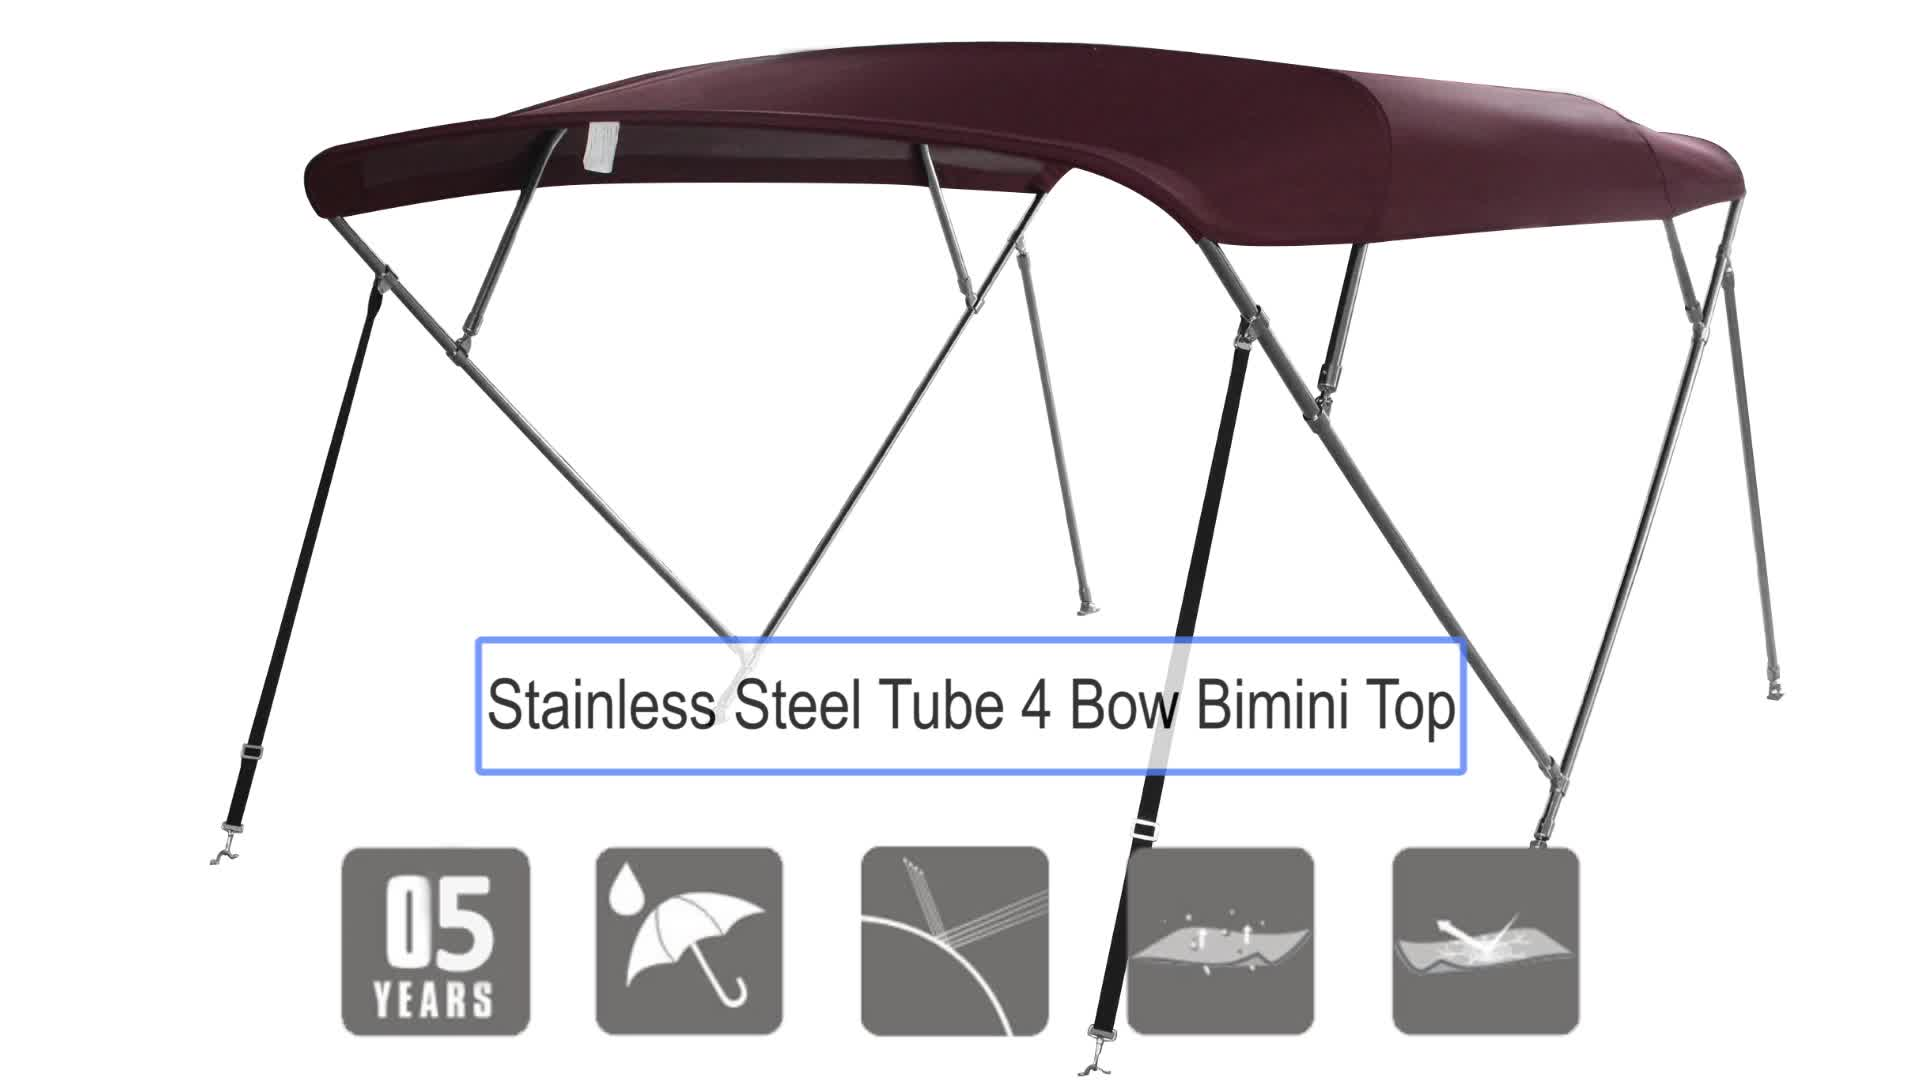 2 Bow Stainless Steel round frame pontoon boat tower tent hardware pontoon boat bimini top with tent